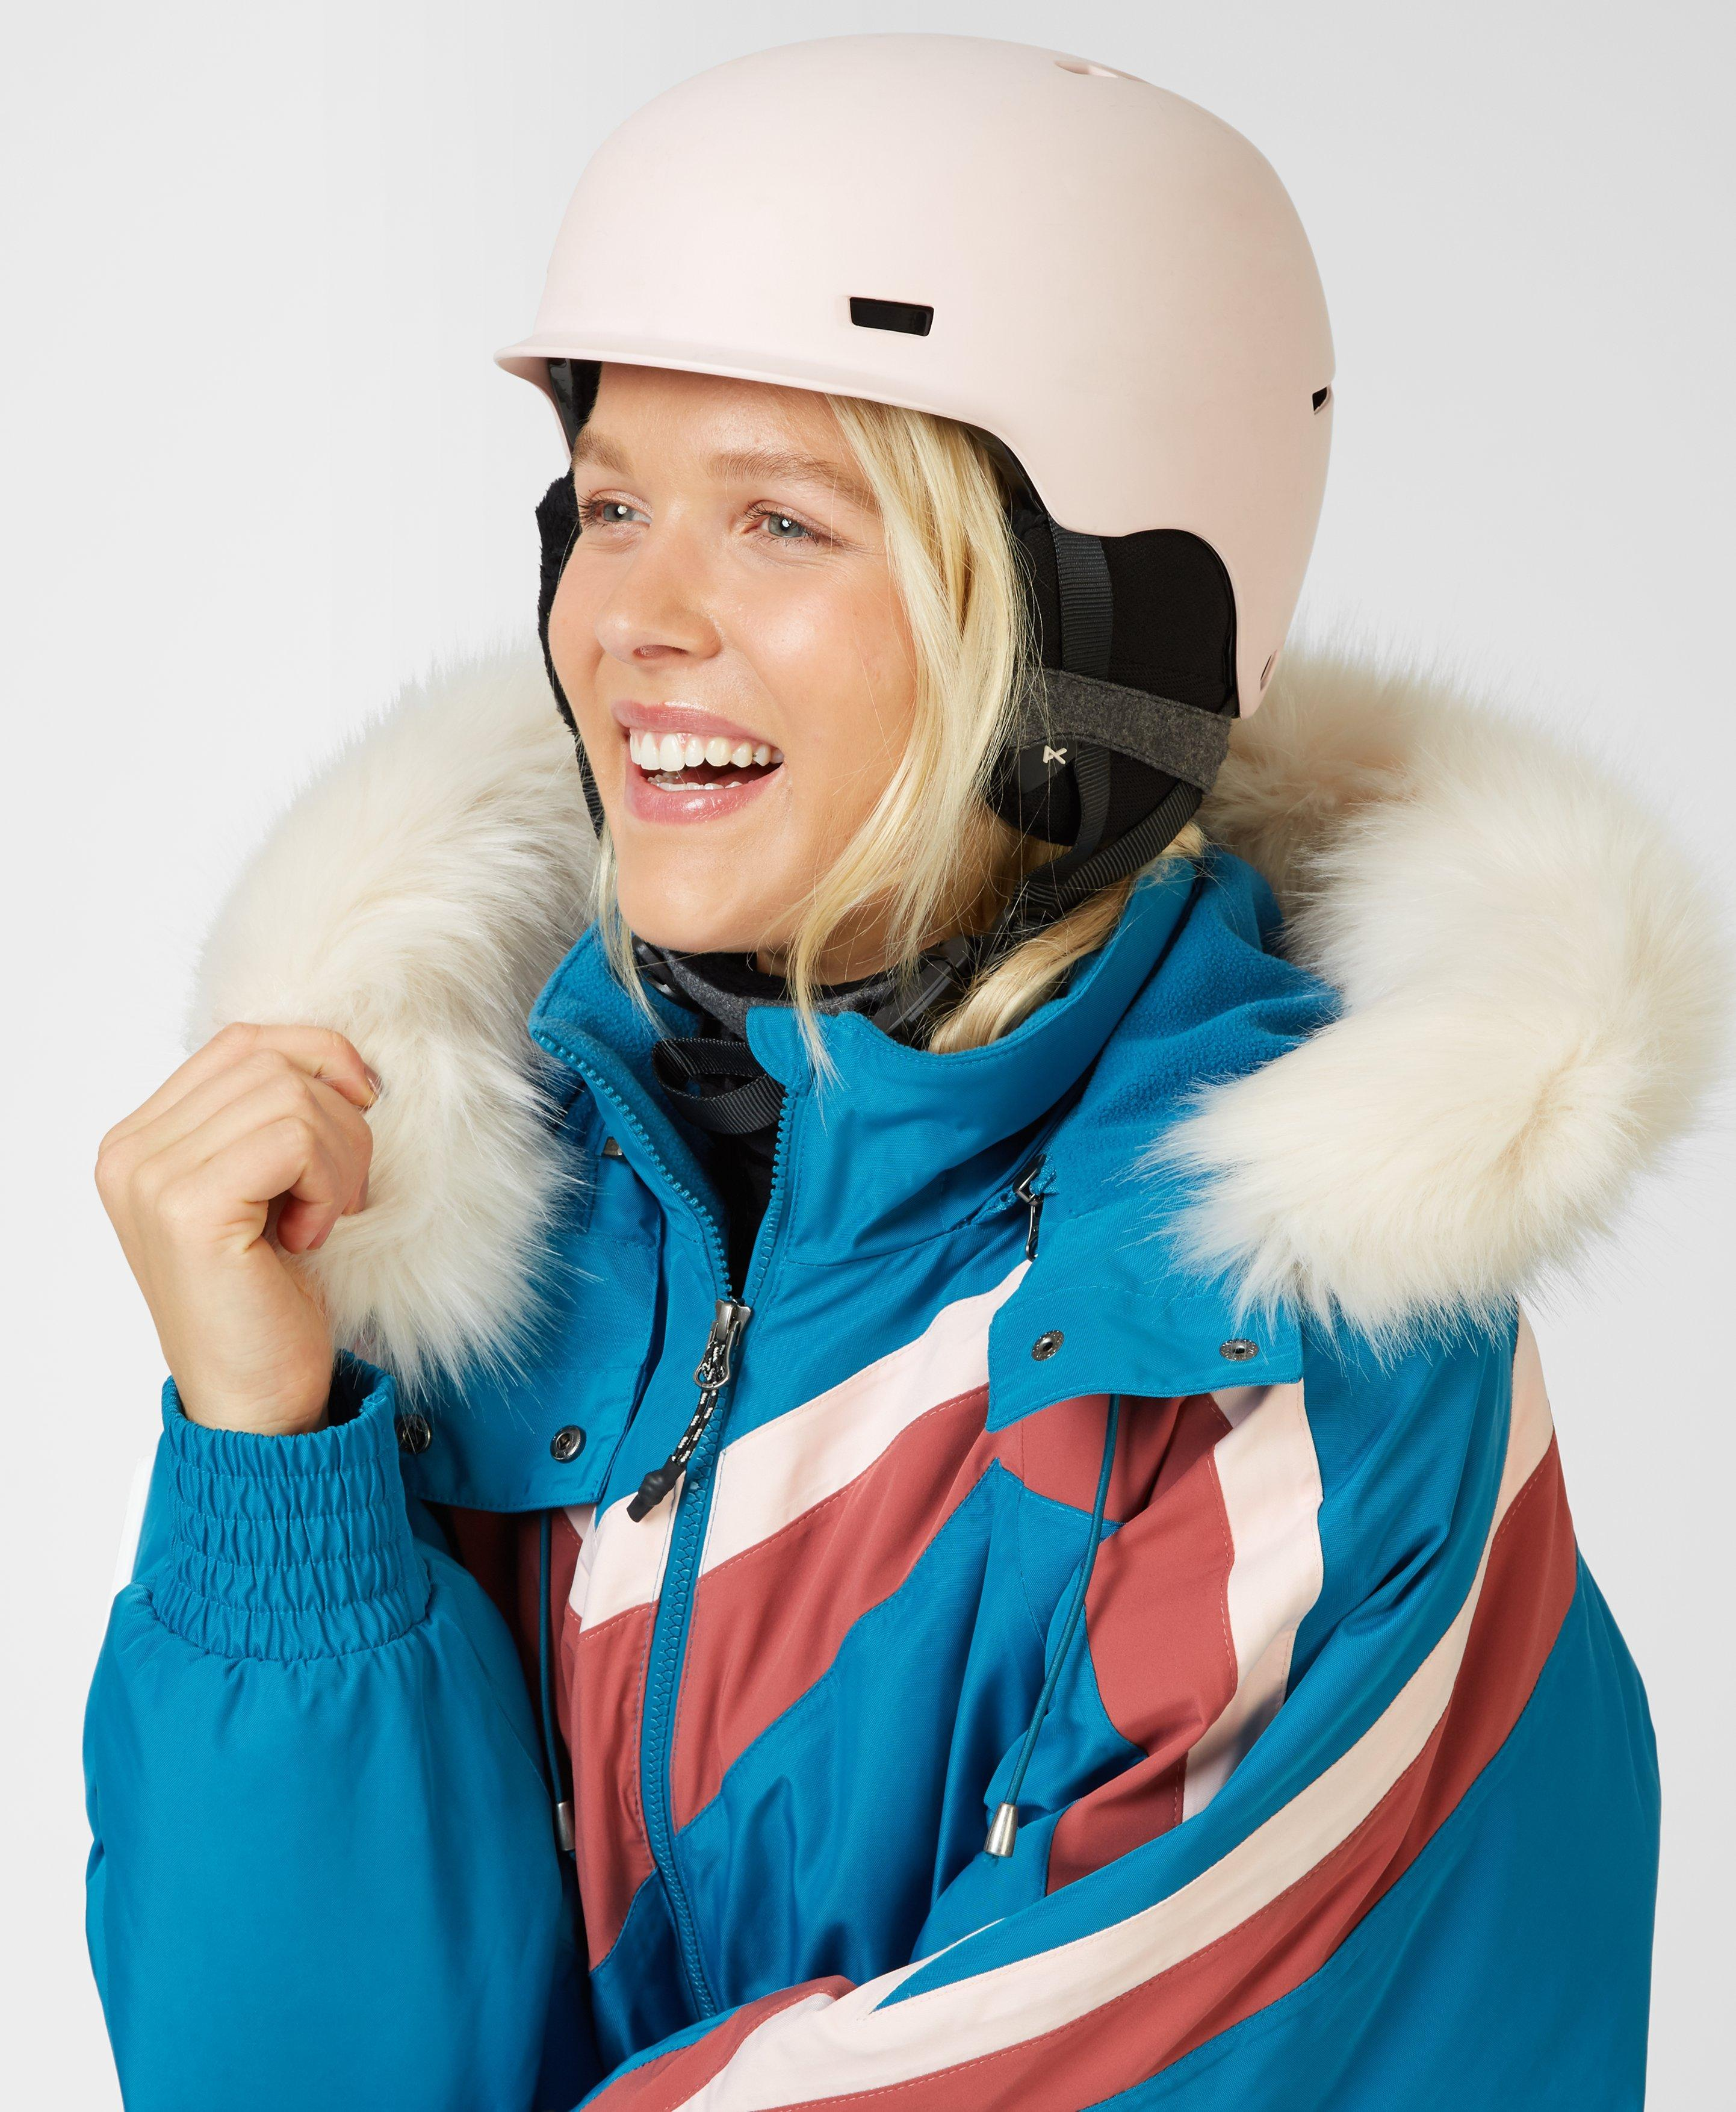 Get ready to buckle up, this ski helmet is easy-fastening and made with endure-shell construction. Durable with passive ventilation, adjustable fit and offers space for audio devices to take your ski sessions up a notch.